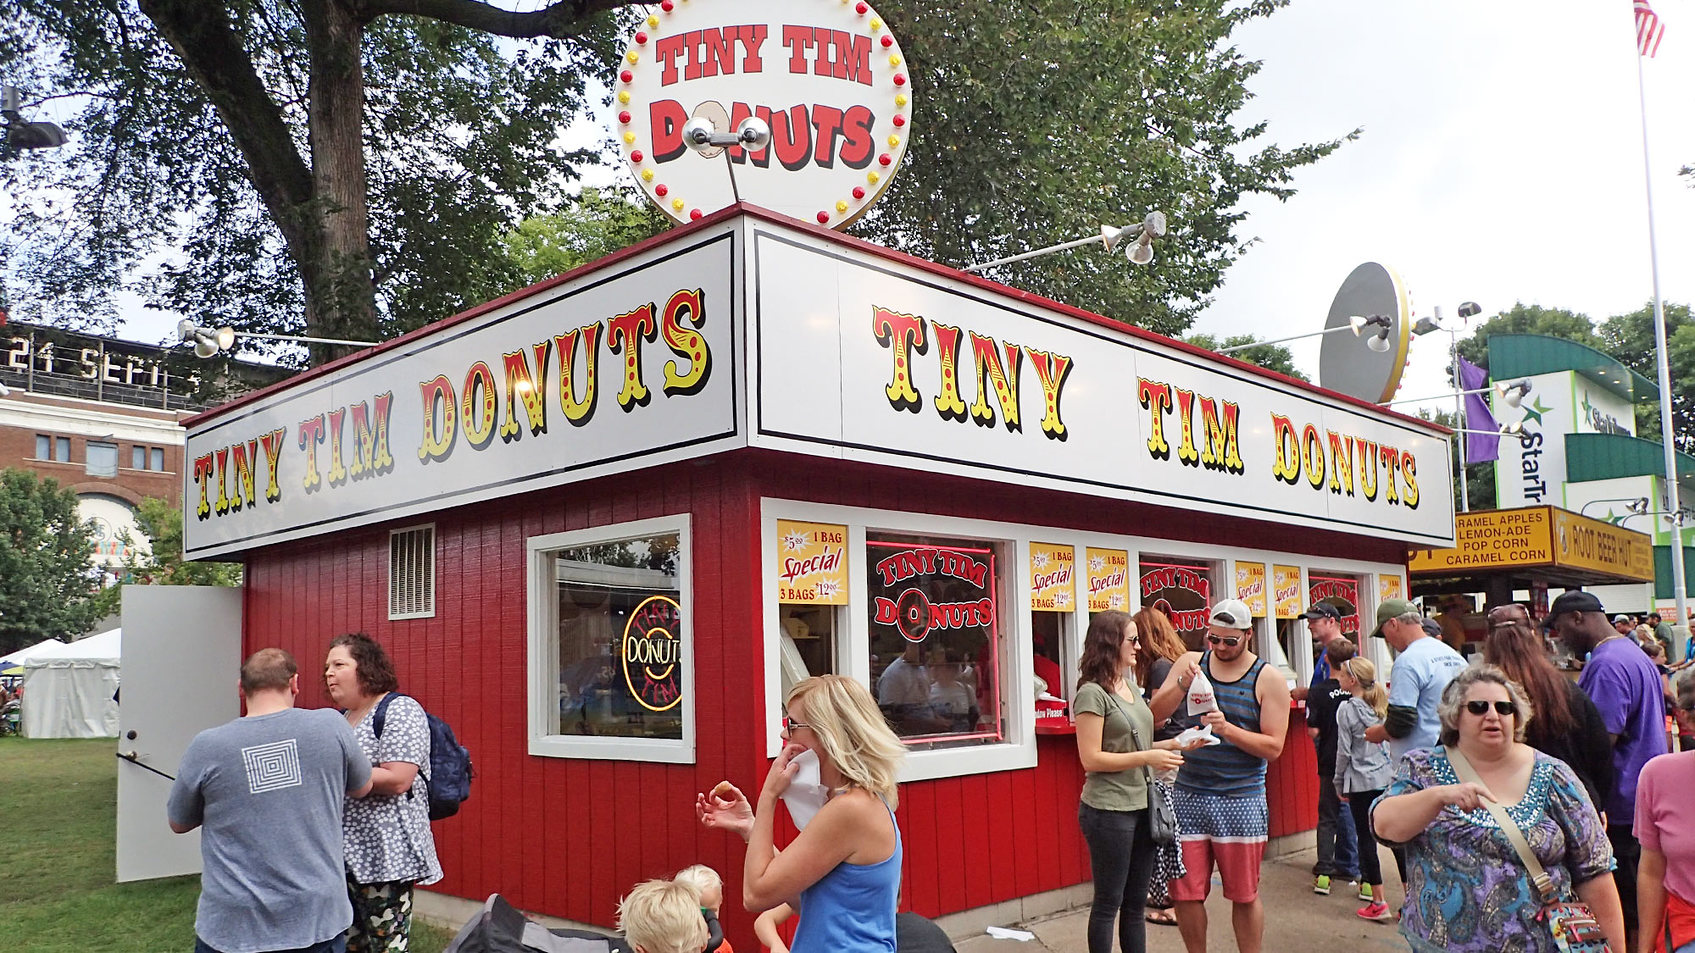 Tiny Tim Miniature Donuts